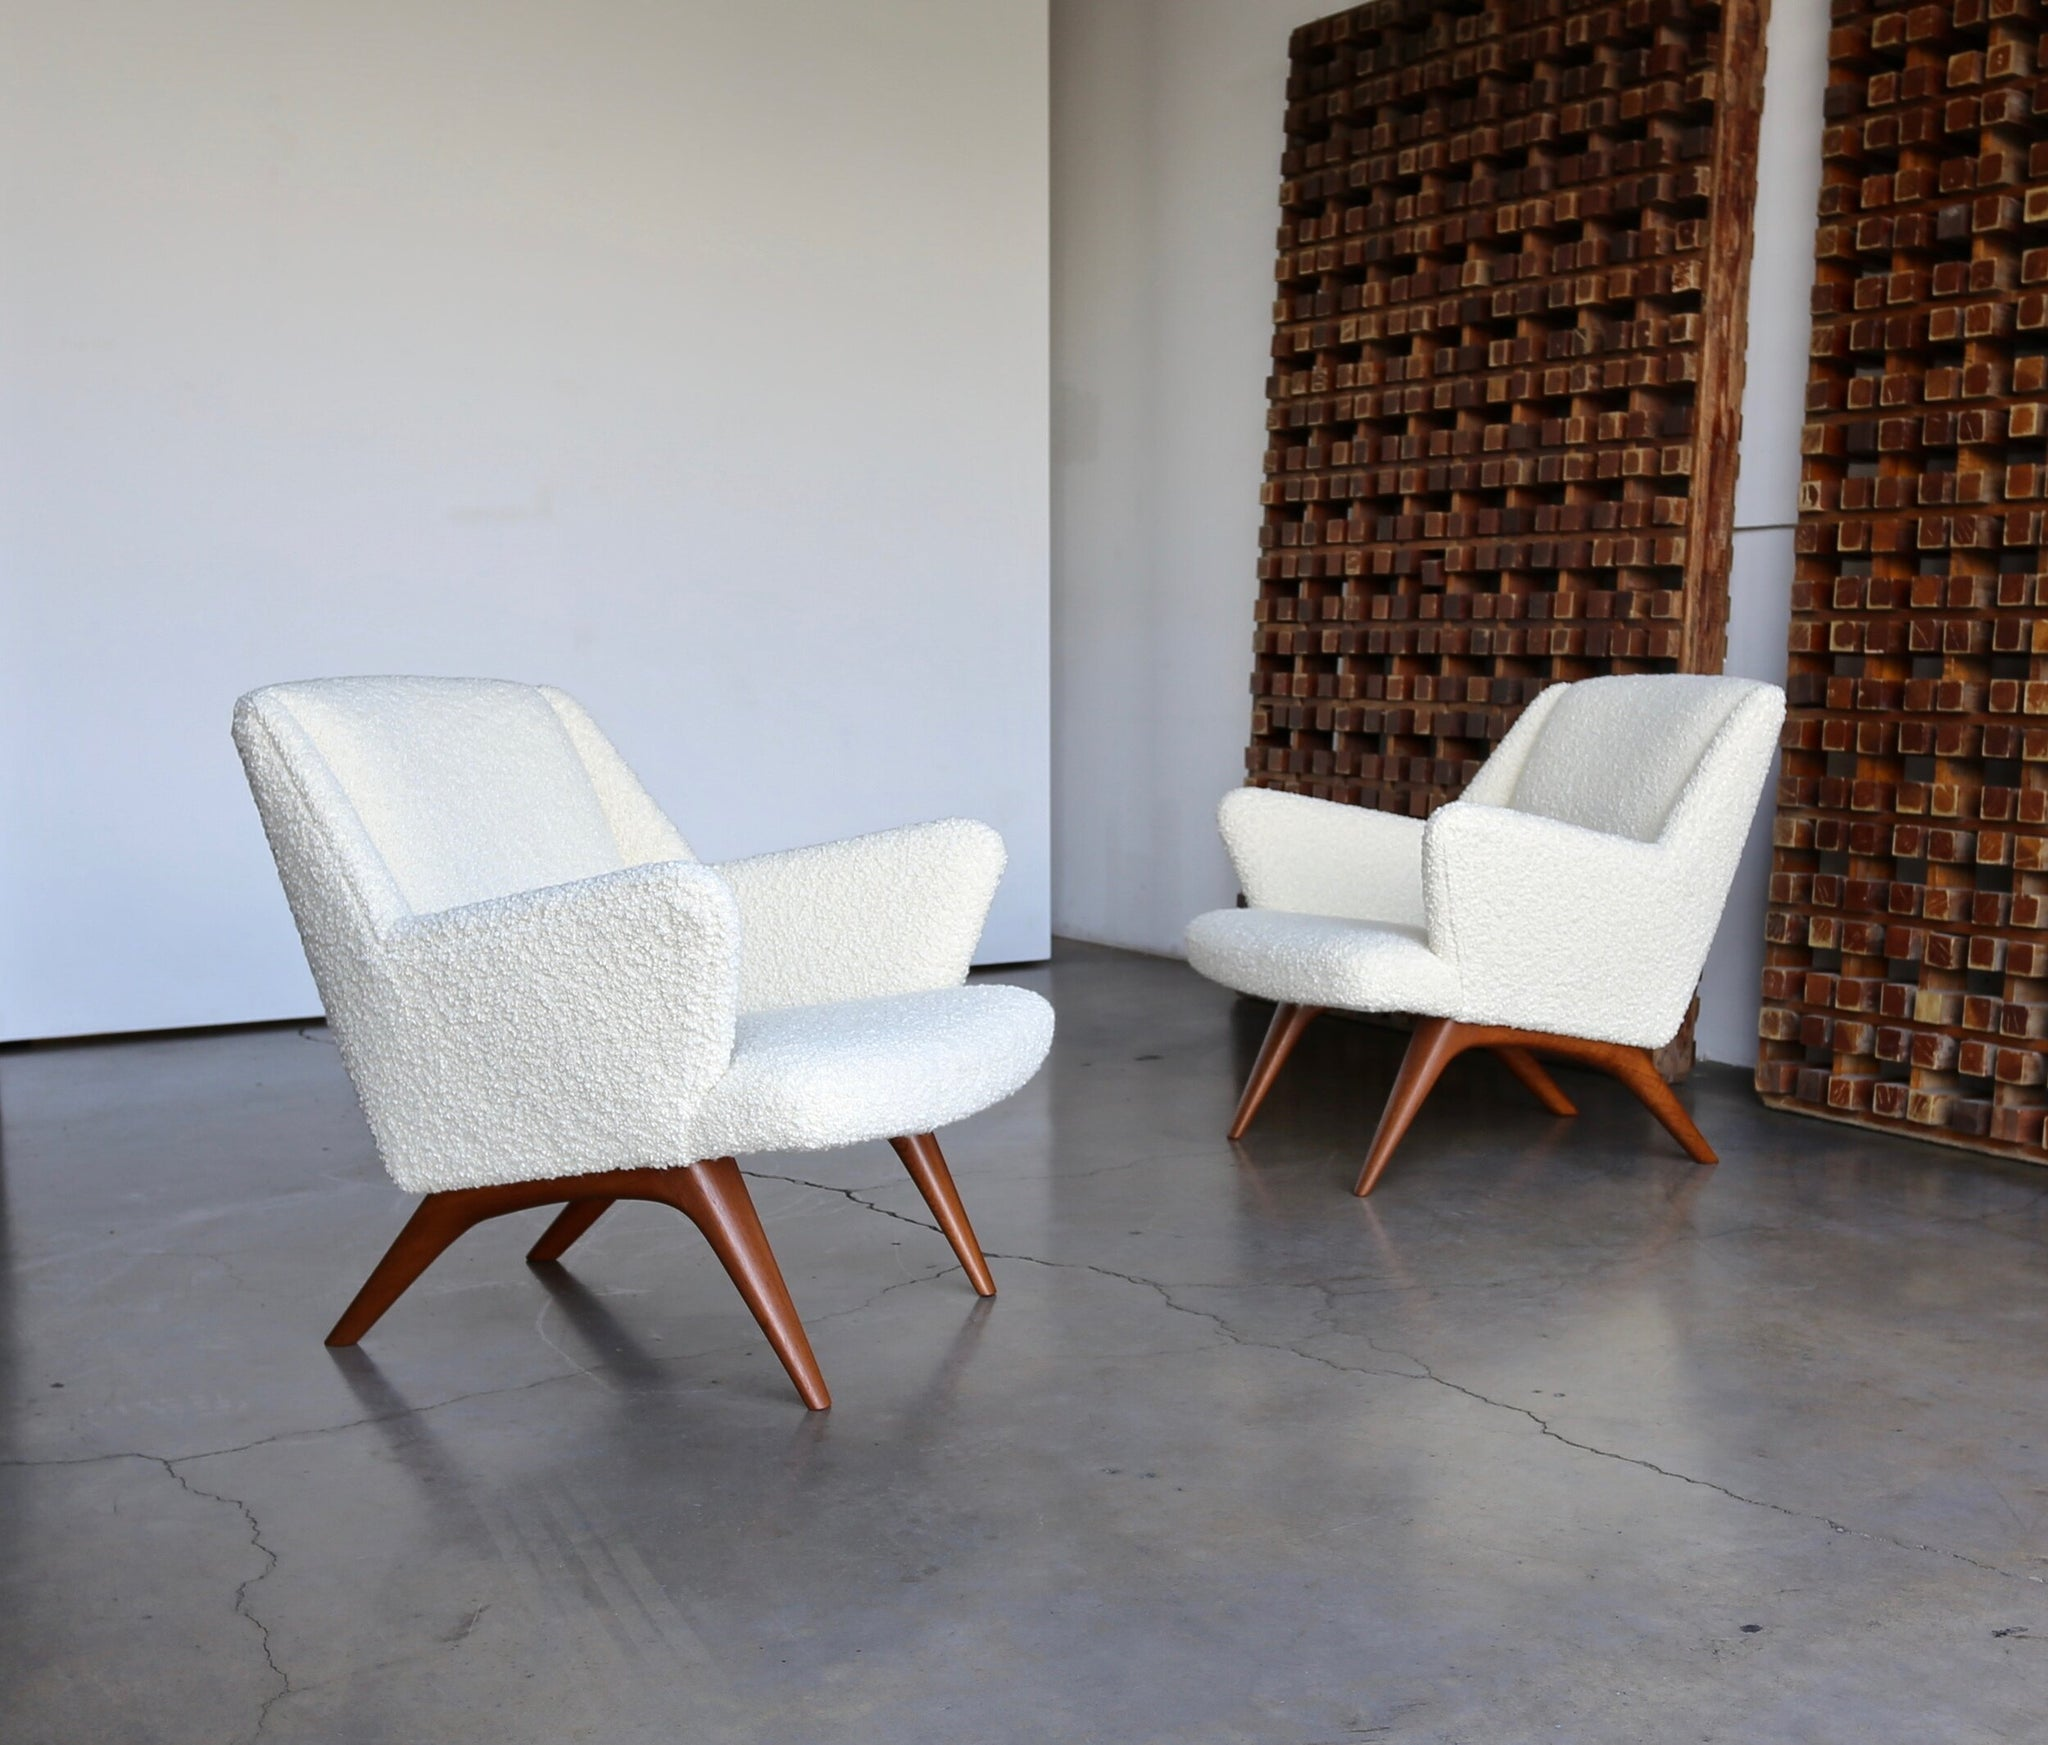 = SOLD = Illum Wikkelsø Lounge Chairs for A. Mikael Laursen & Søn circa 1960